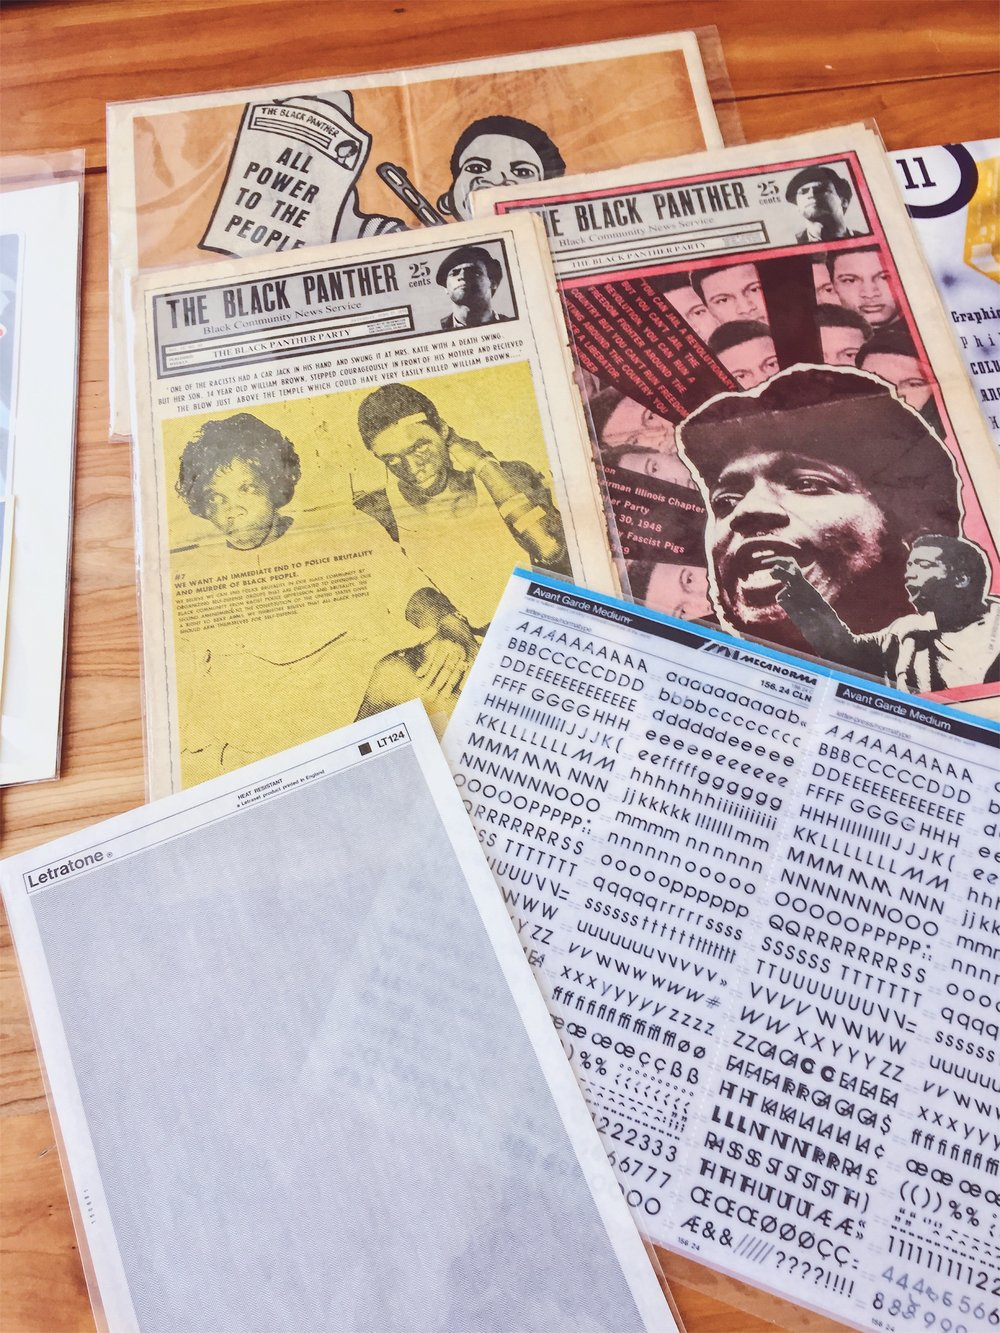 The complete collection of  The Black Panther  newsletters by artist Emory Douglas where he frequently used rub-on transfers to create depth and textures